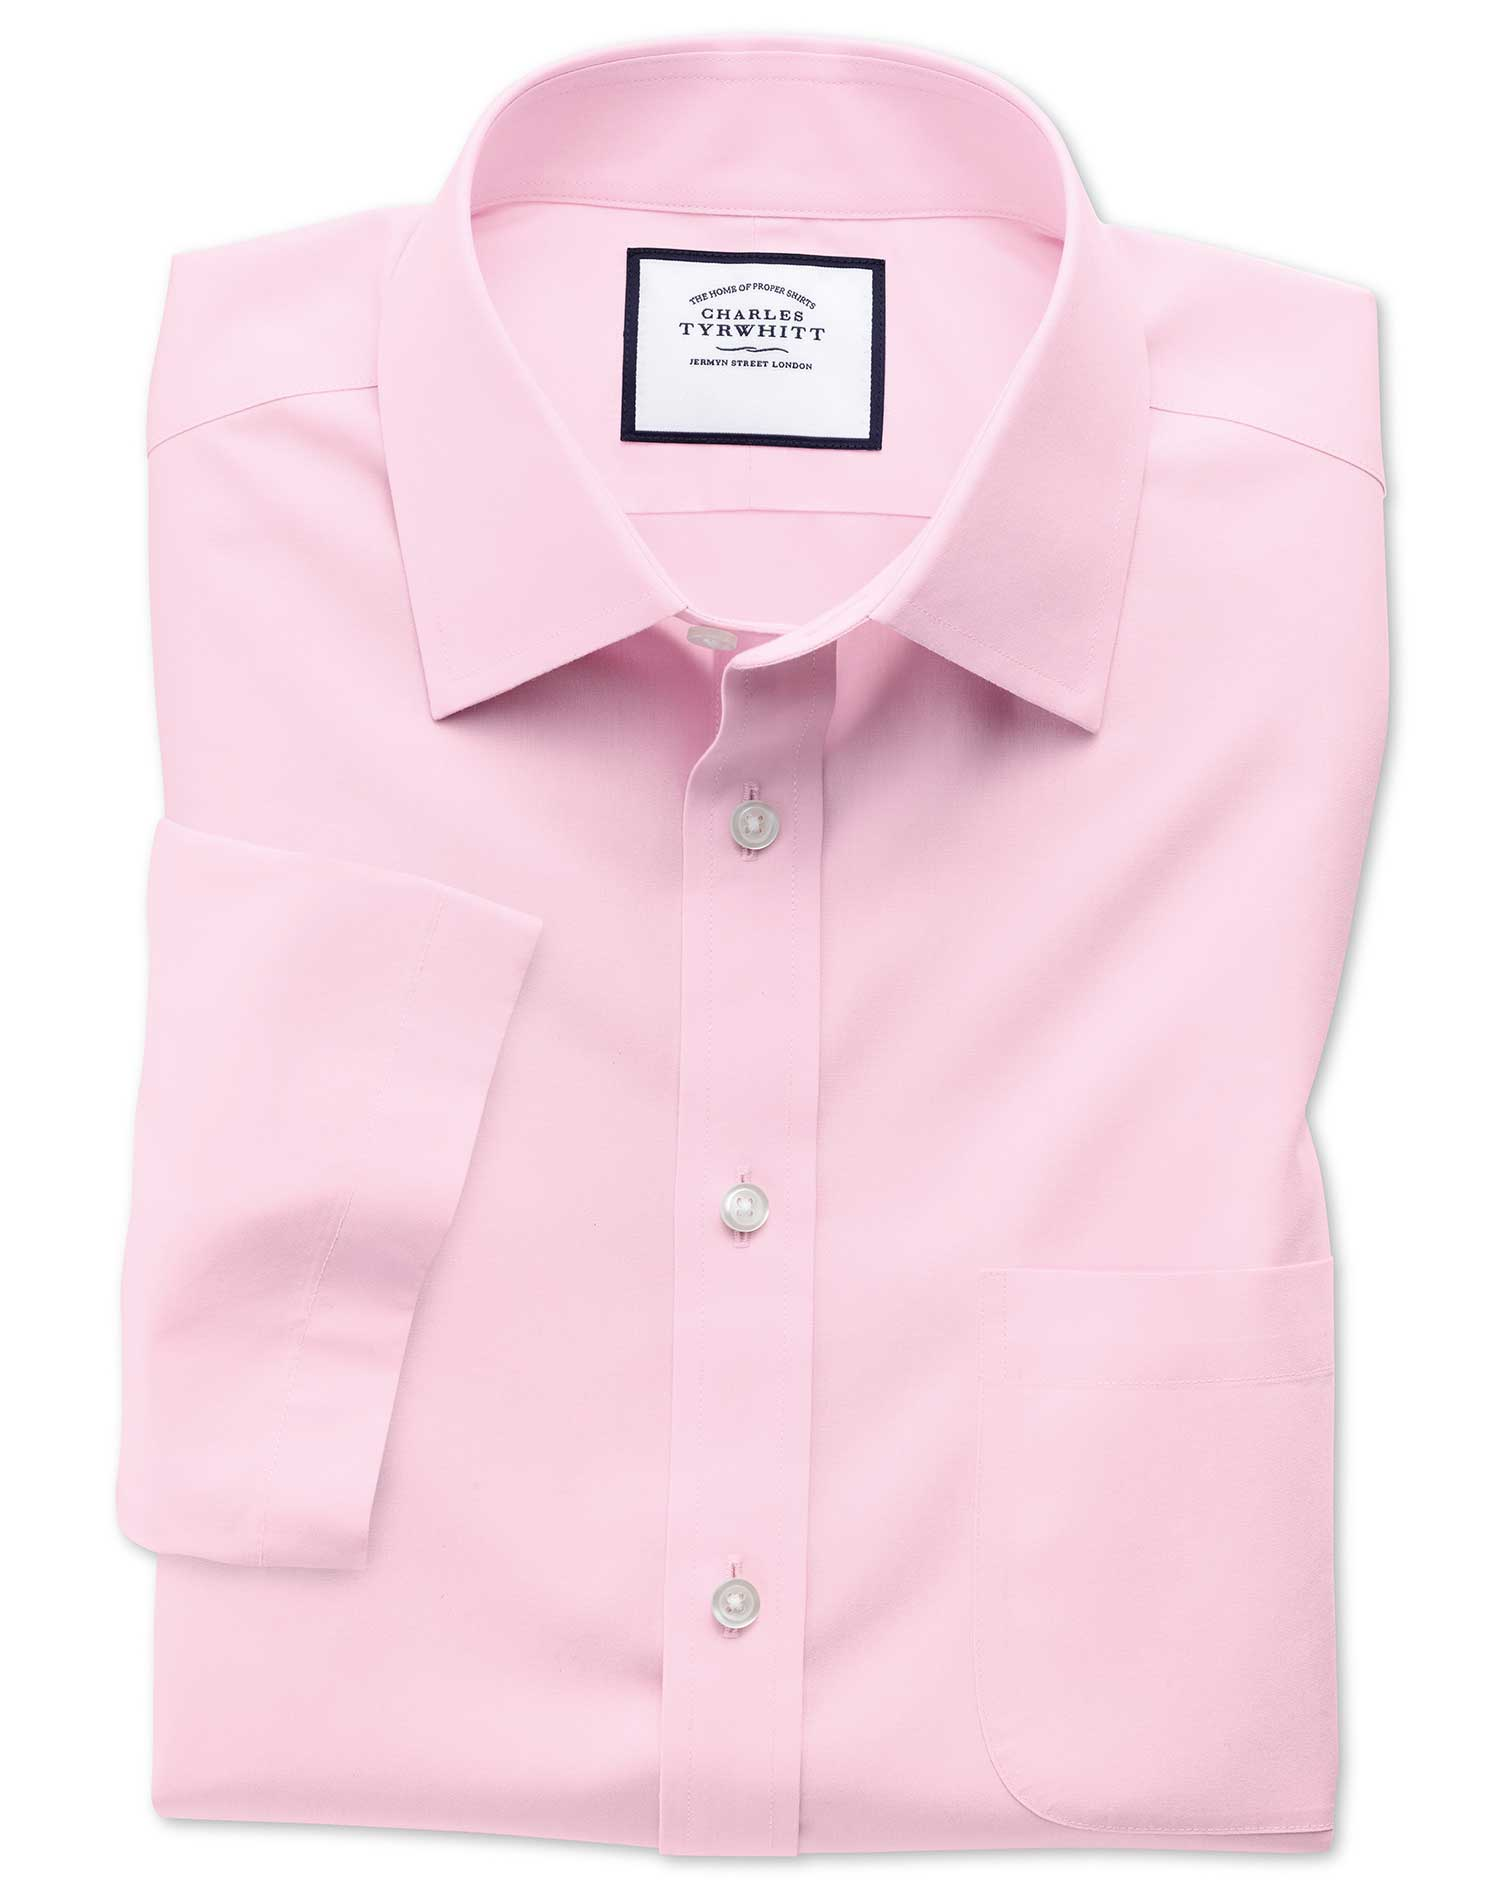 Slim Fit Non-Iron Poplin Short Sleeve Pink Cotton Formal Shirt Size 17.5/Short by Charles Tyrwhitt